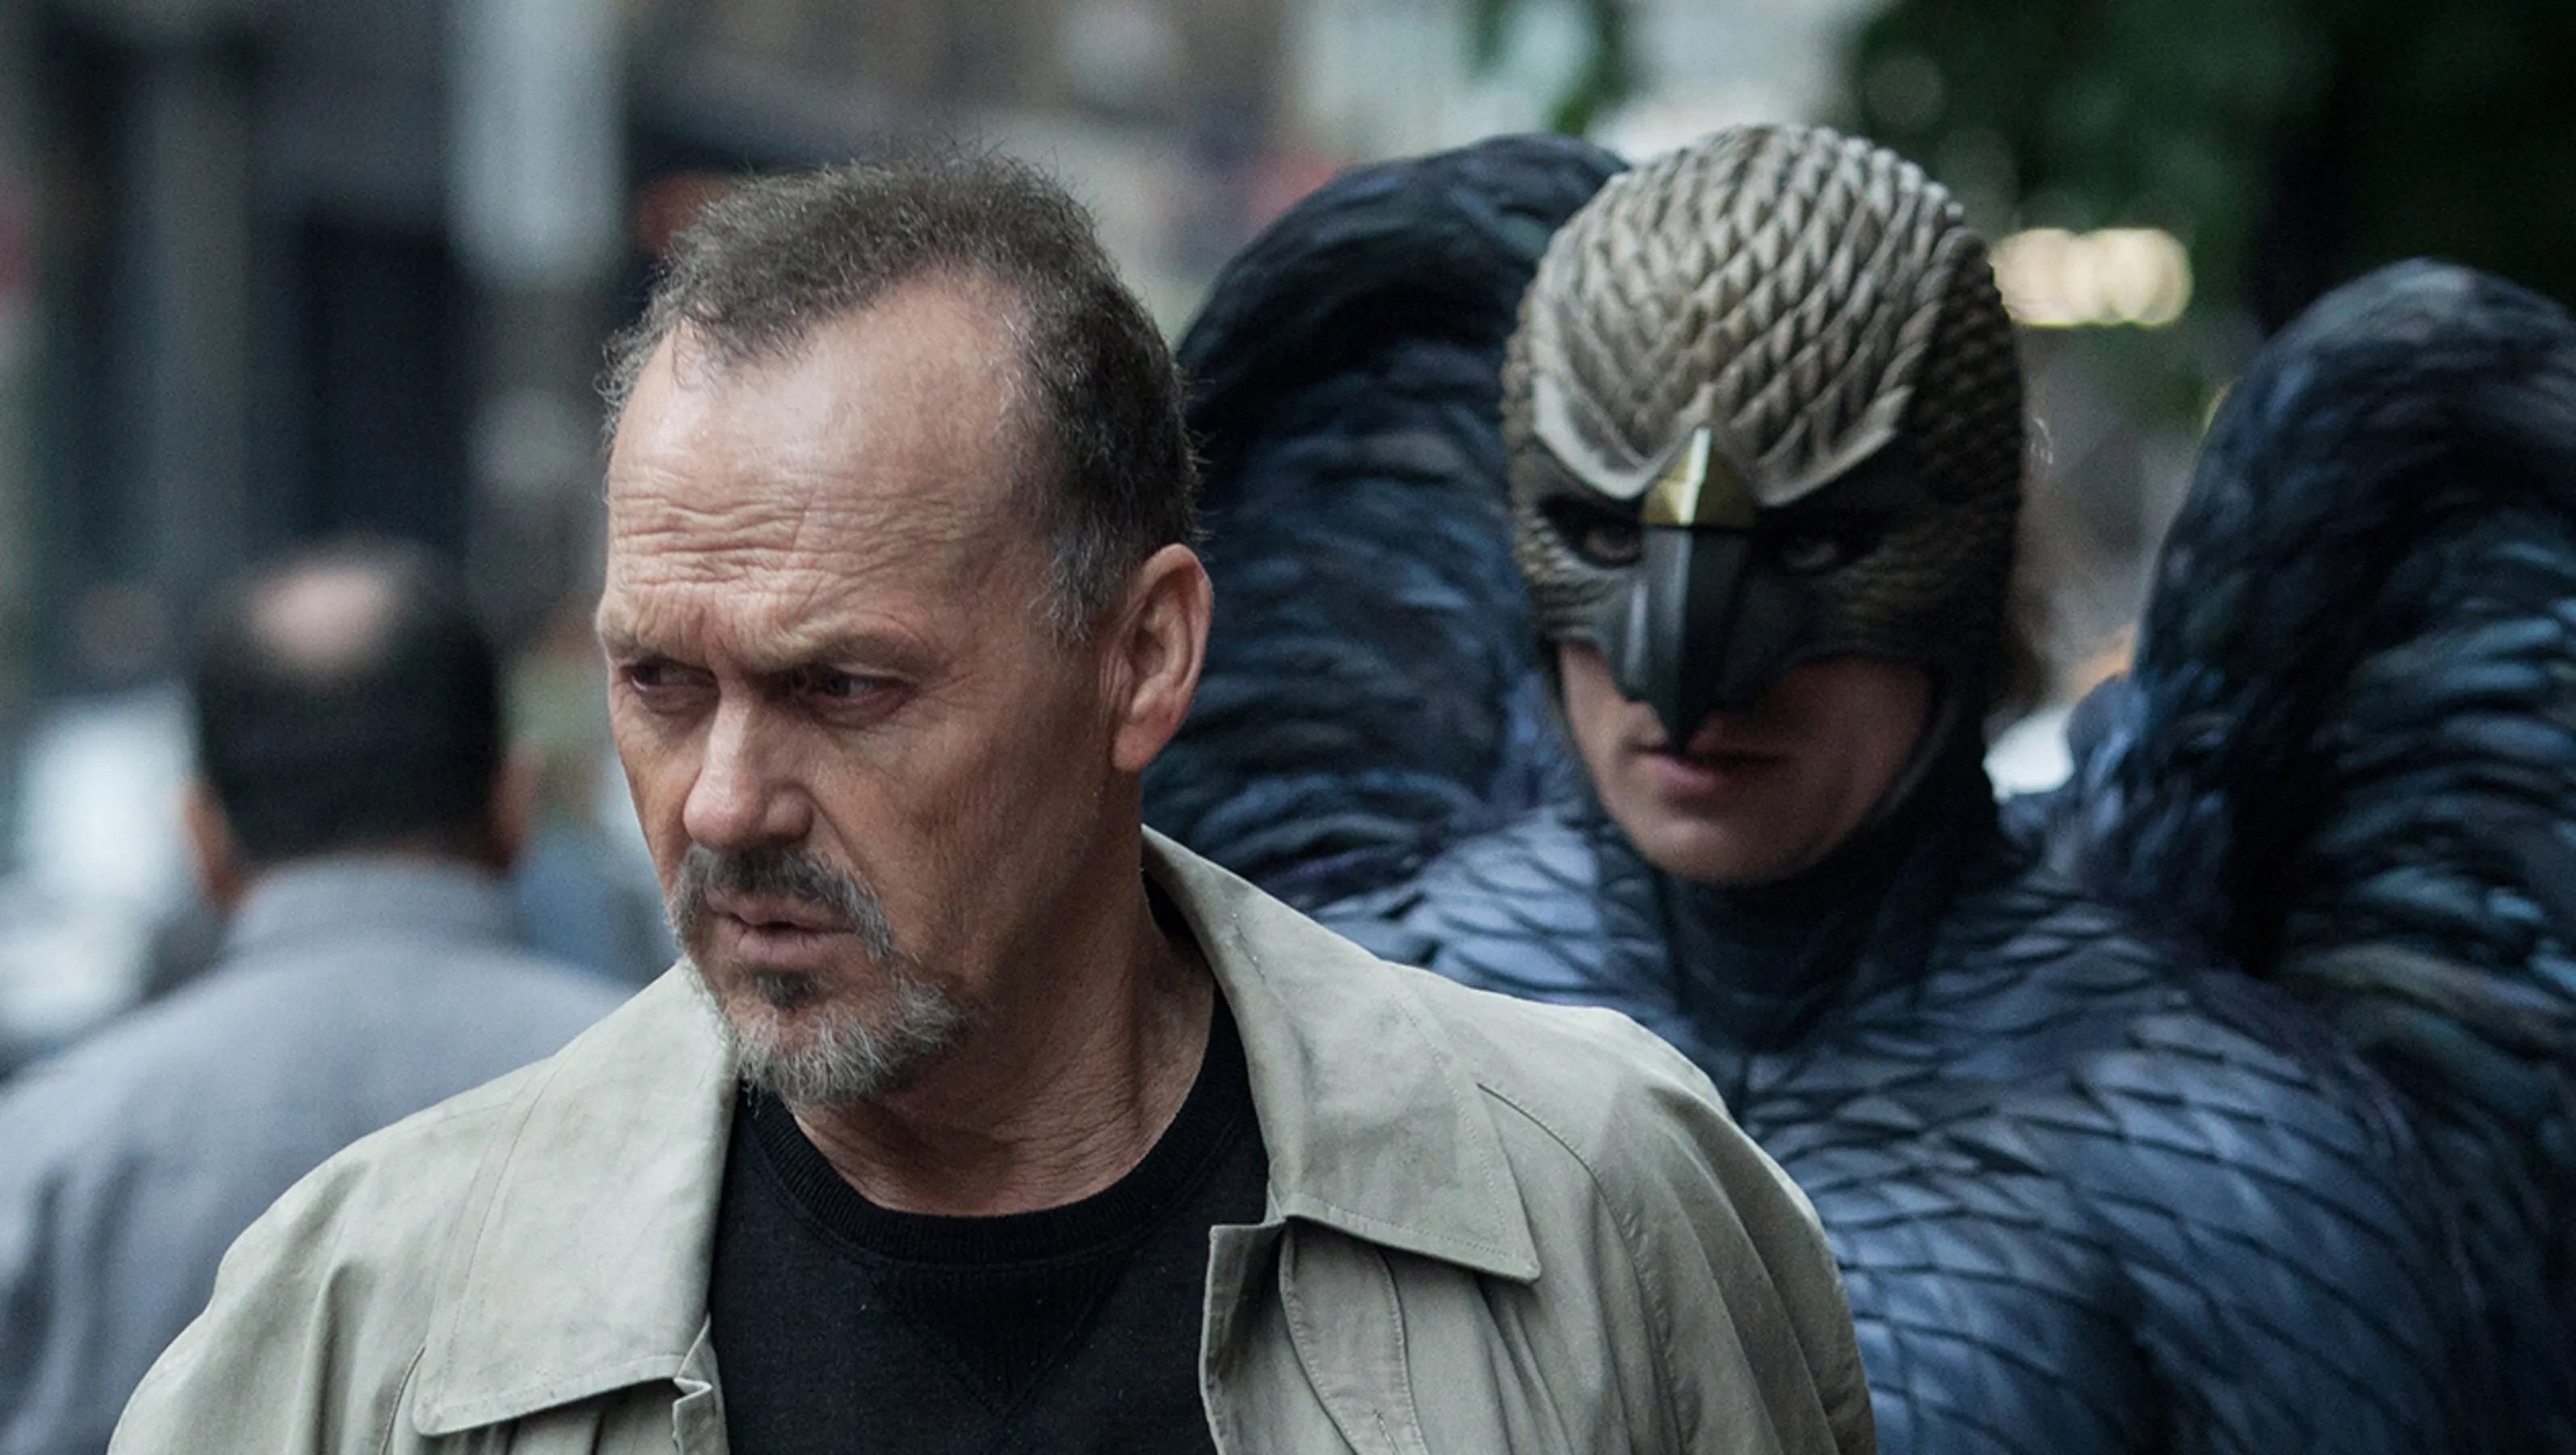 of monsters and men birdman whiplash nightcrawler birdman